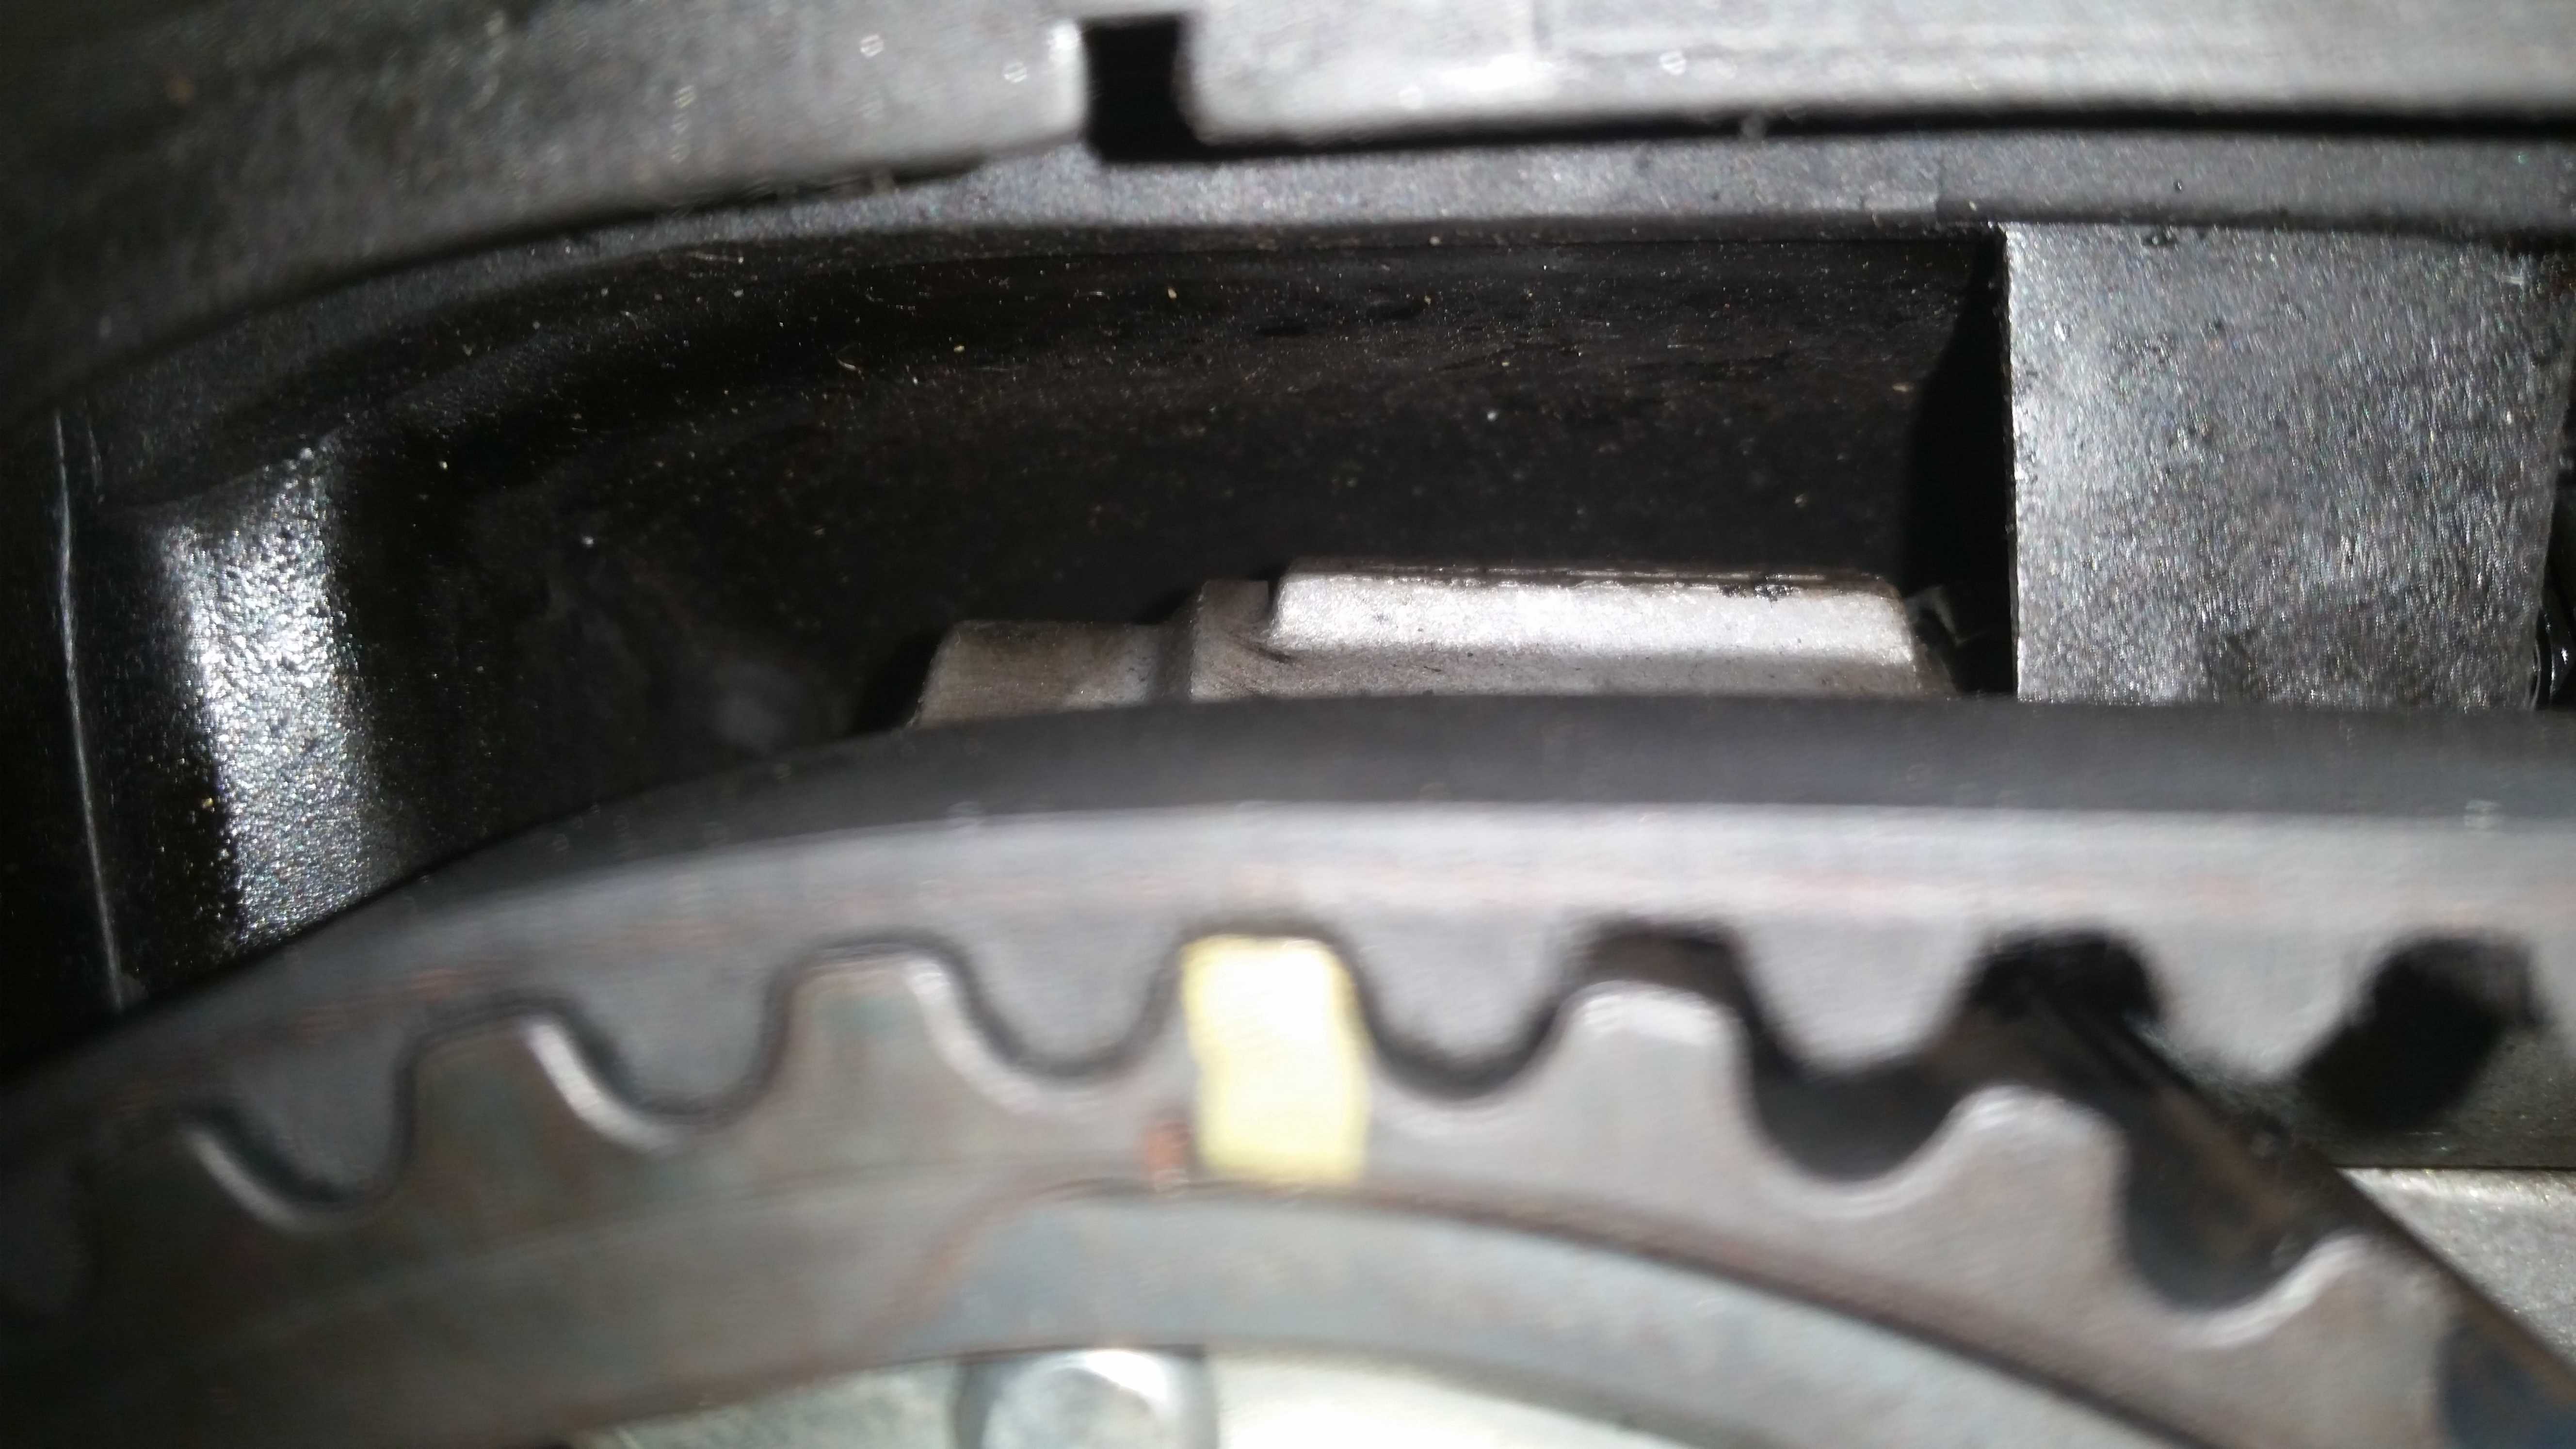 I Have a 2005 Volvo S60 2 5T Fwd that cranks, but no longer